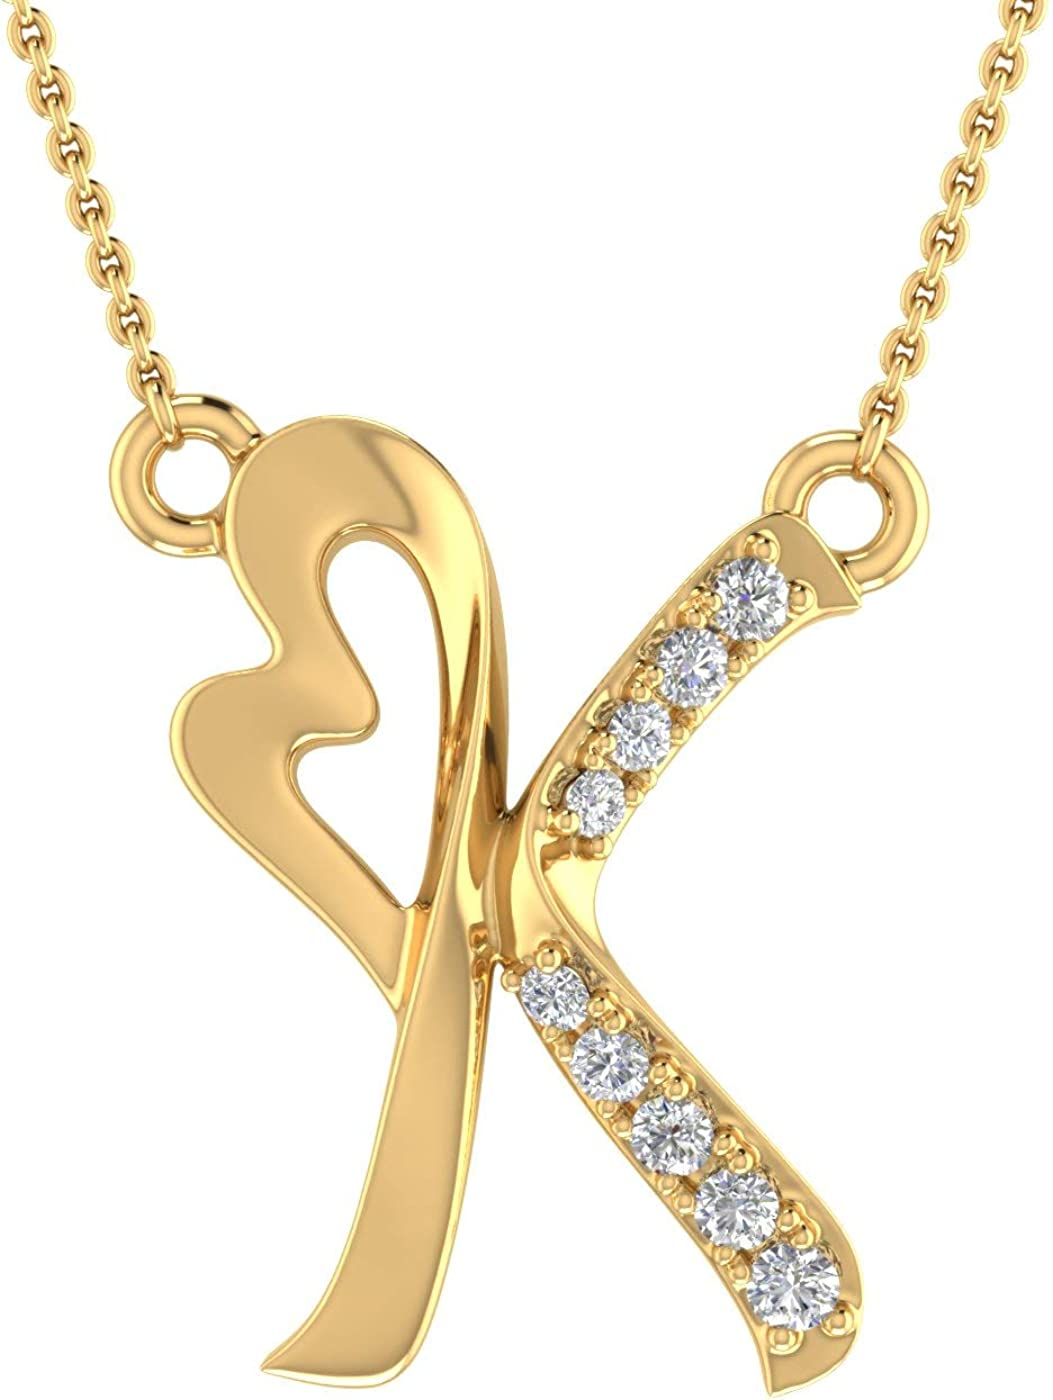 Diamond Initial Letter Pendant Necklace Free shipping in Fresno Mall Gold 10K Yellow with